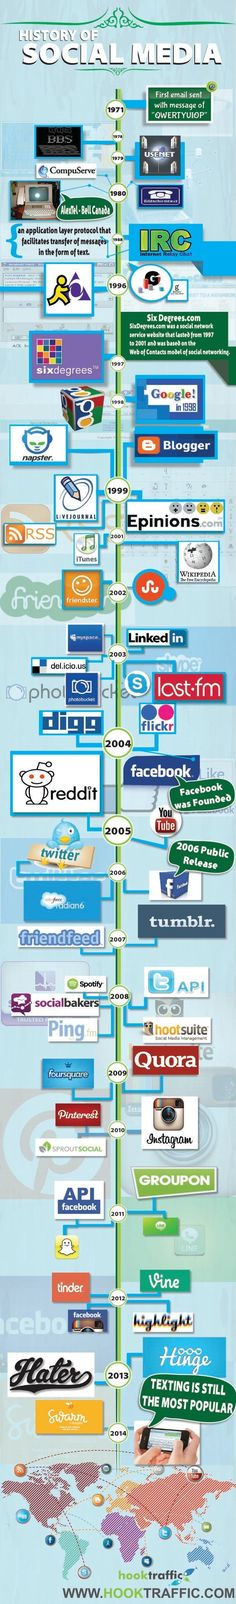 History of Social Me